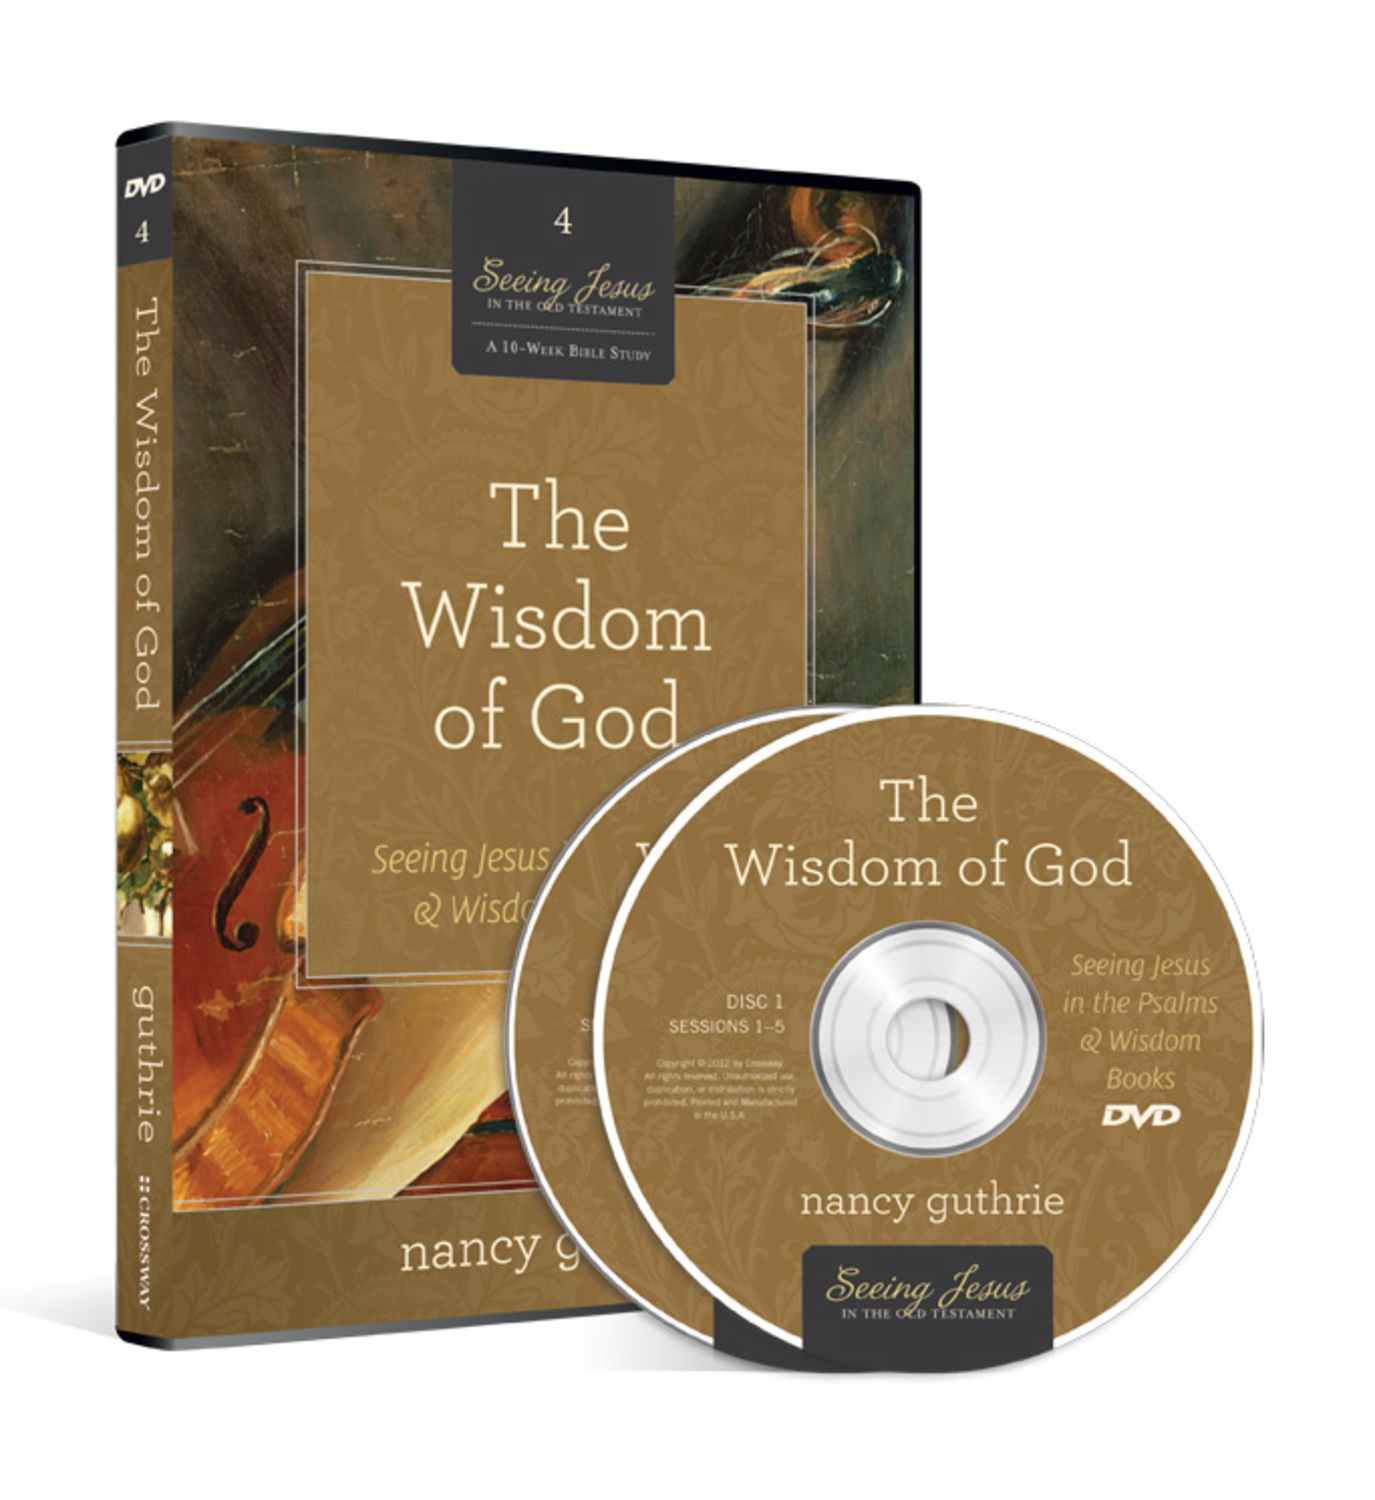 The Wisdom of God DVD